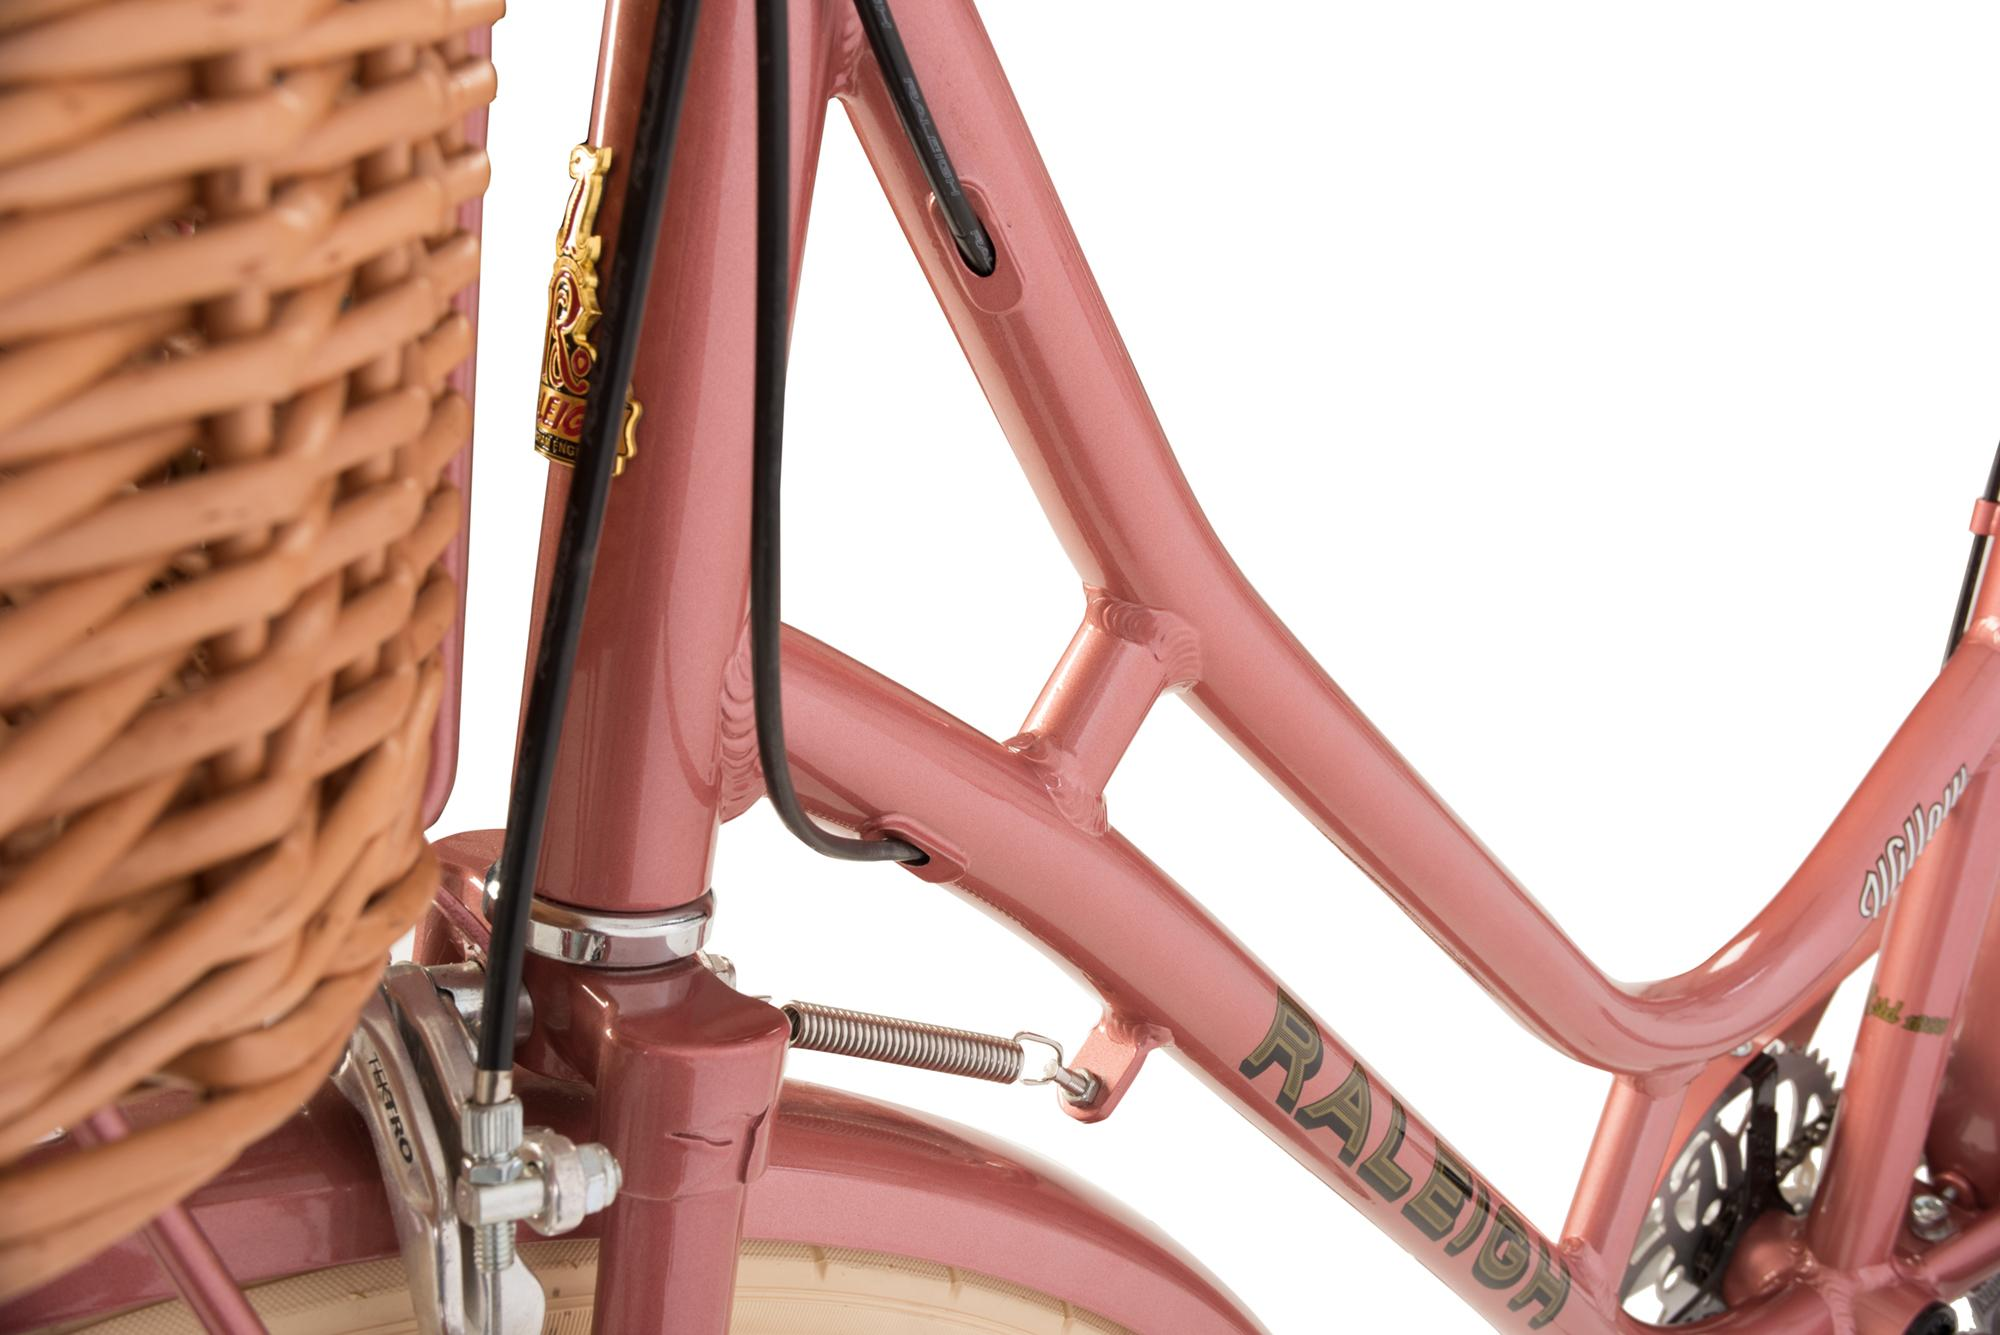 Detail of the front tube of the Raleigh Willow classic ladies bike